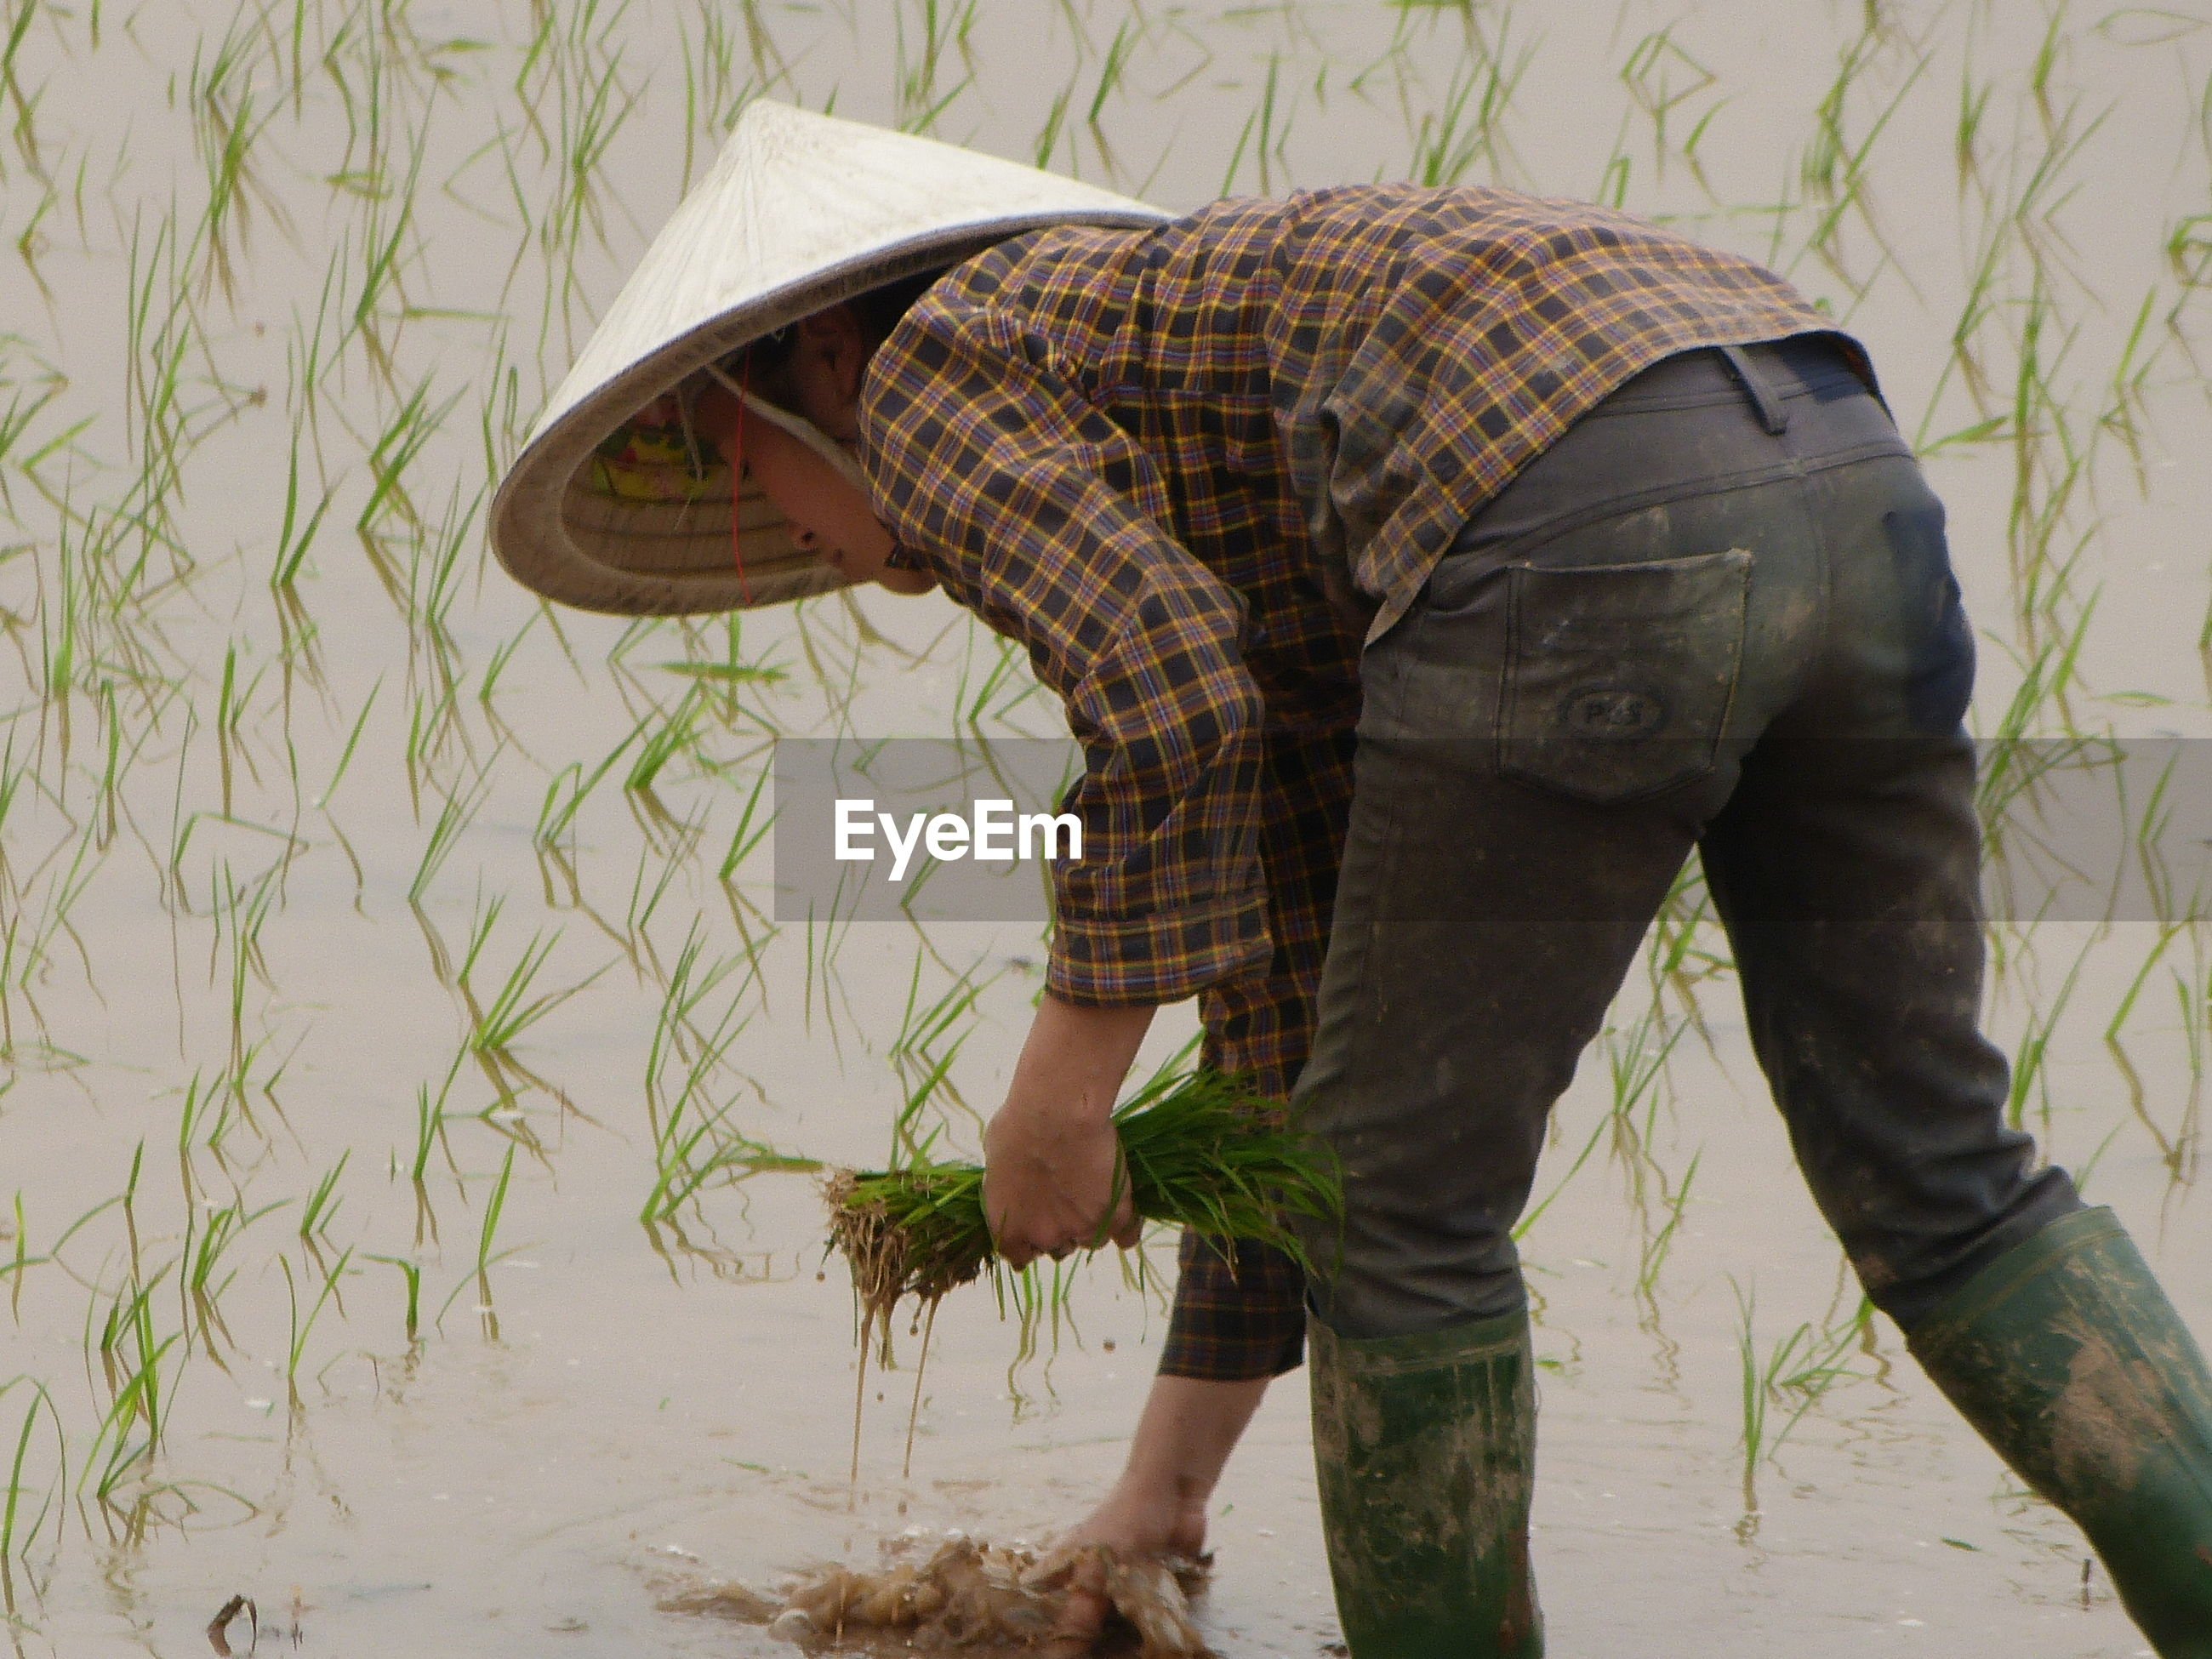 Man planting rice plants in paddy